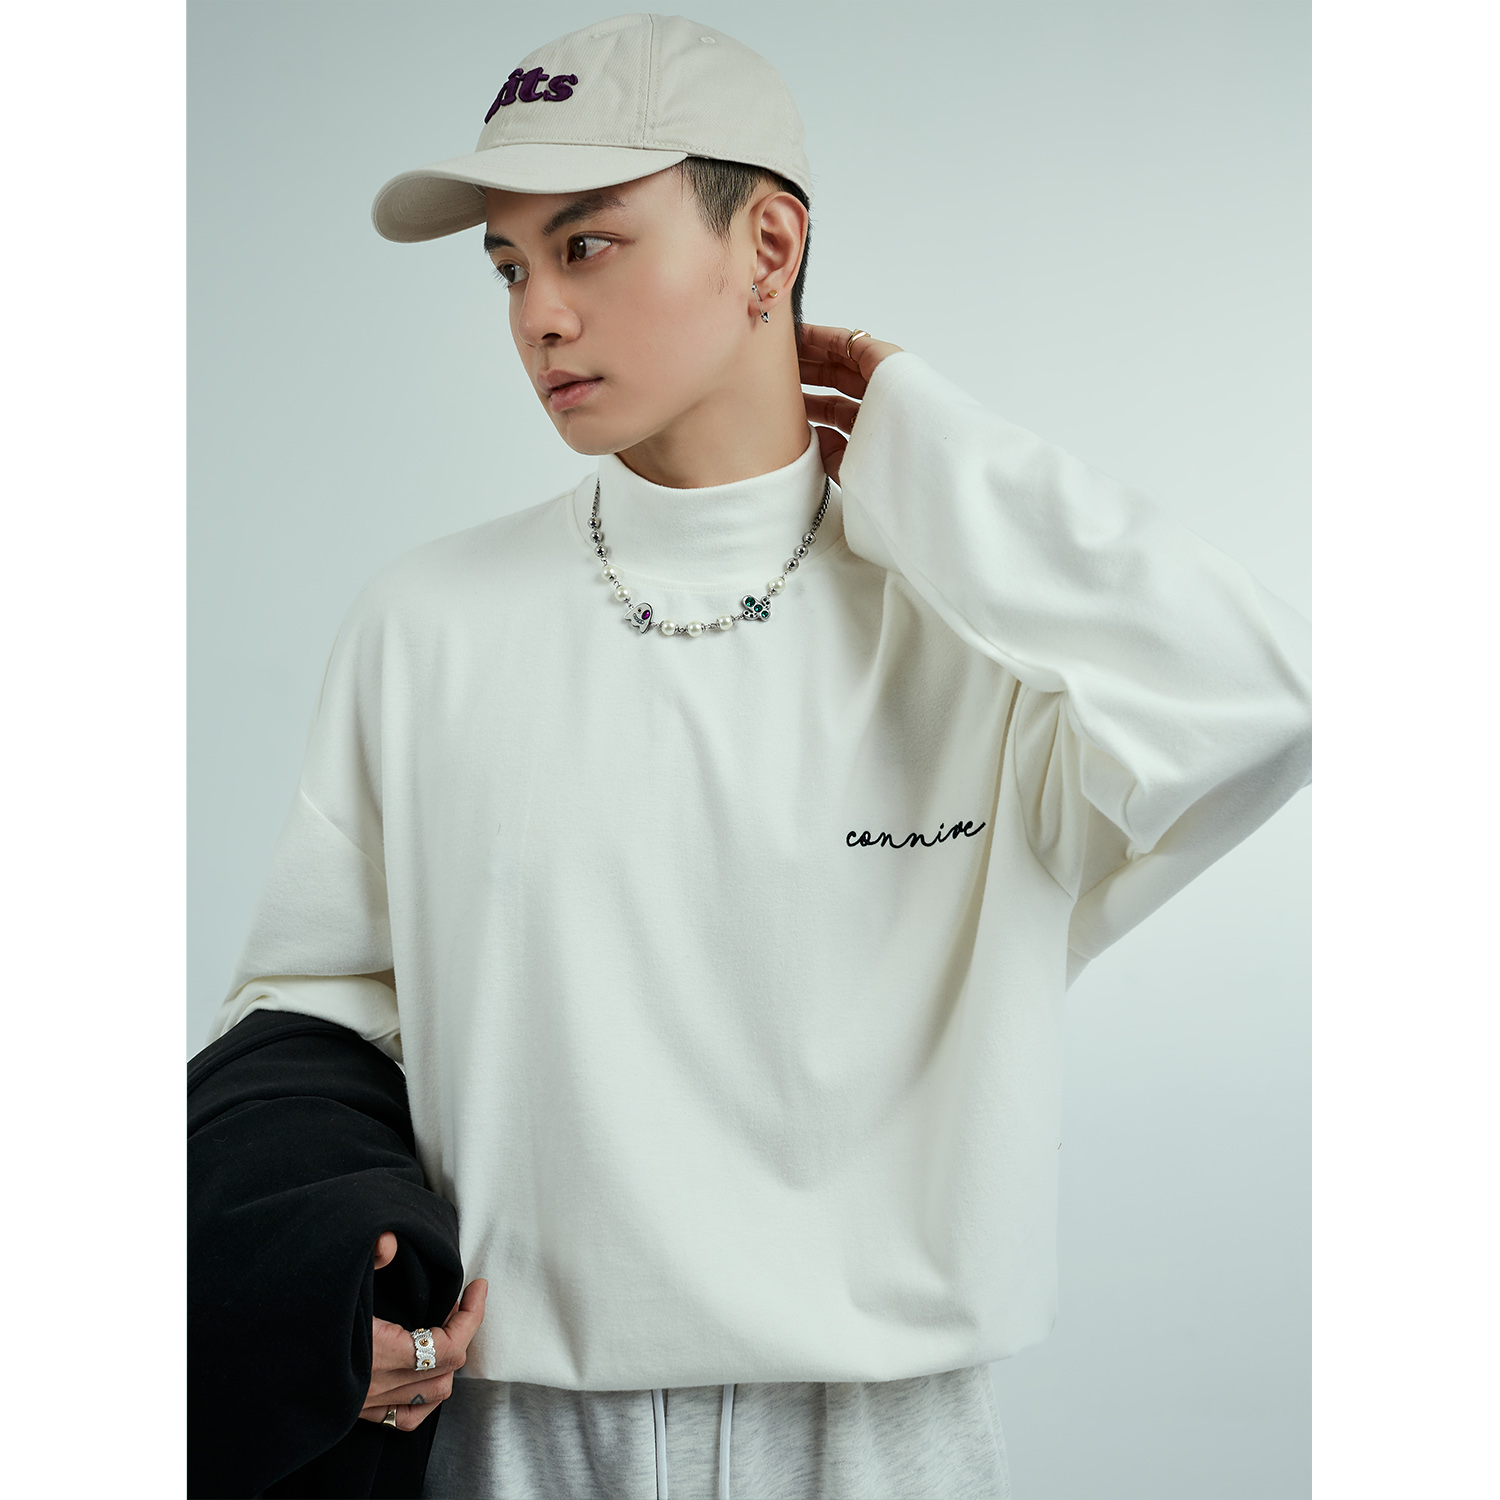 Indulge tide brand long sleeve solid color t-shirt mens 2021 spring and autumn port wind and day department half high collar with white backing T-shirt inside